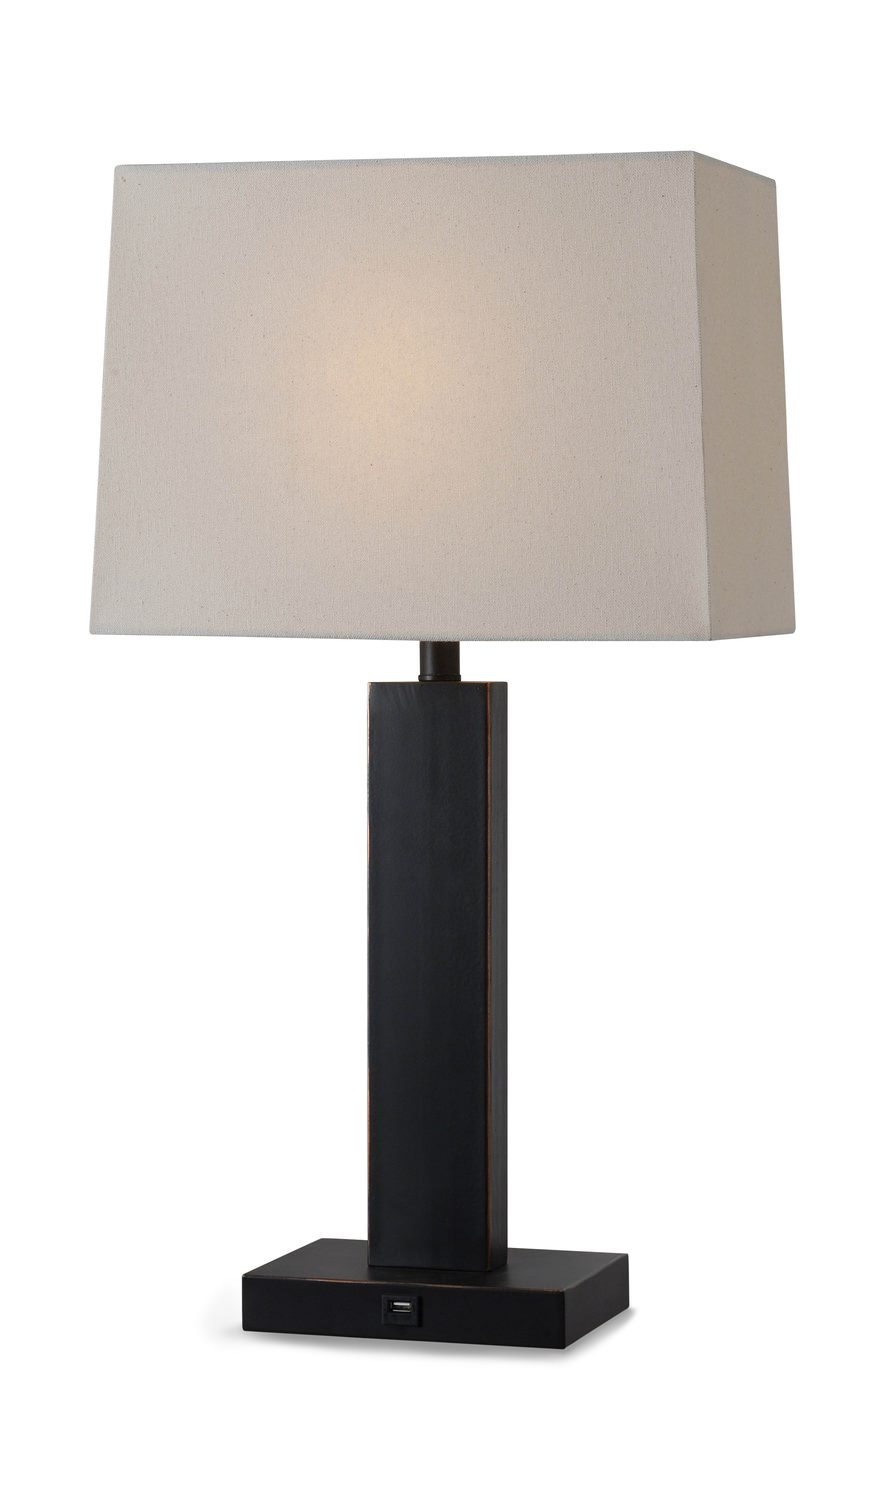 Innkeeper Table Lamp With USB Port